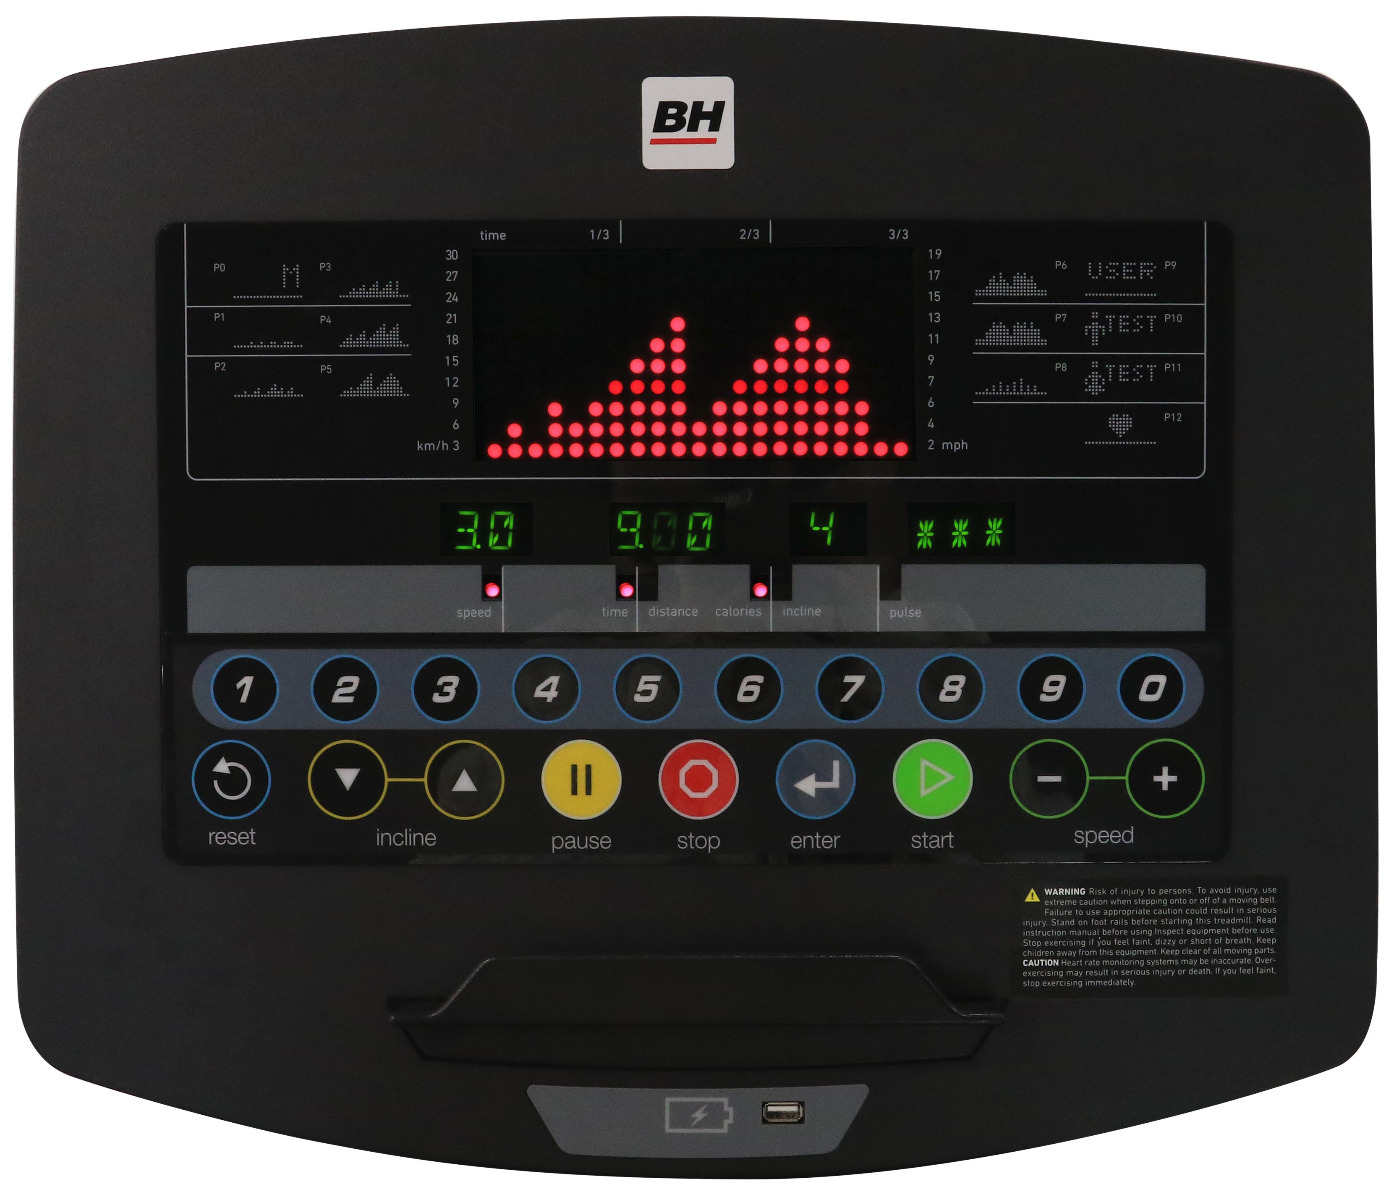 BH Fitness LK700T19LED Basic Console